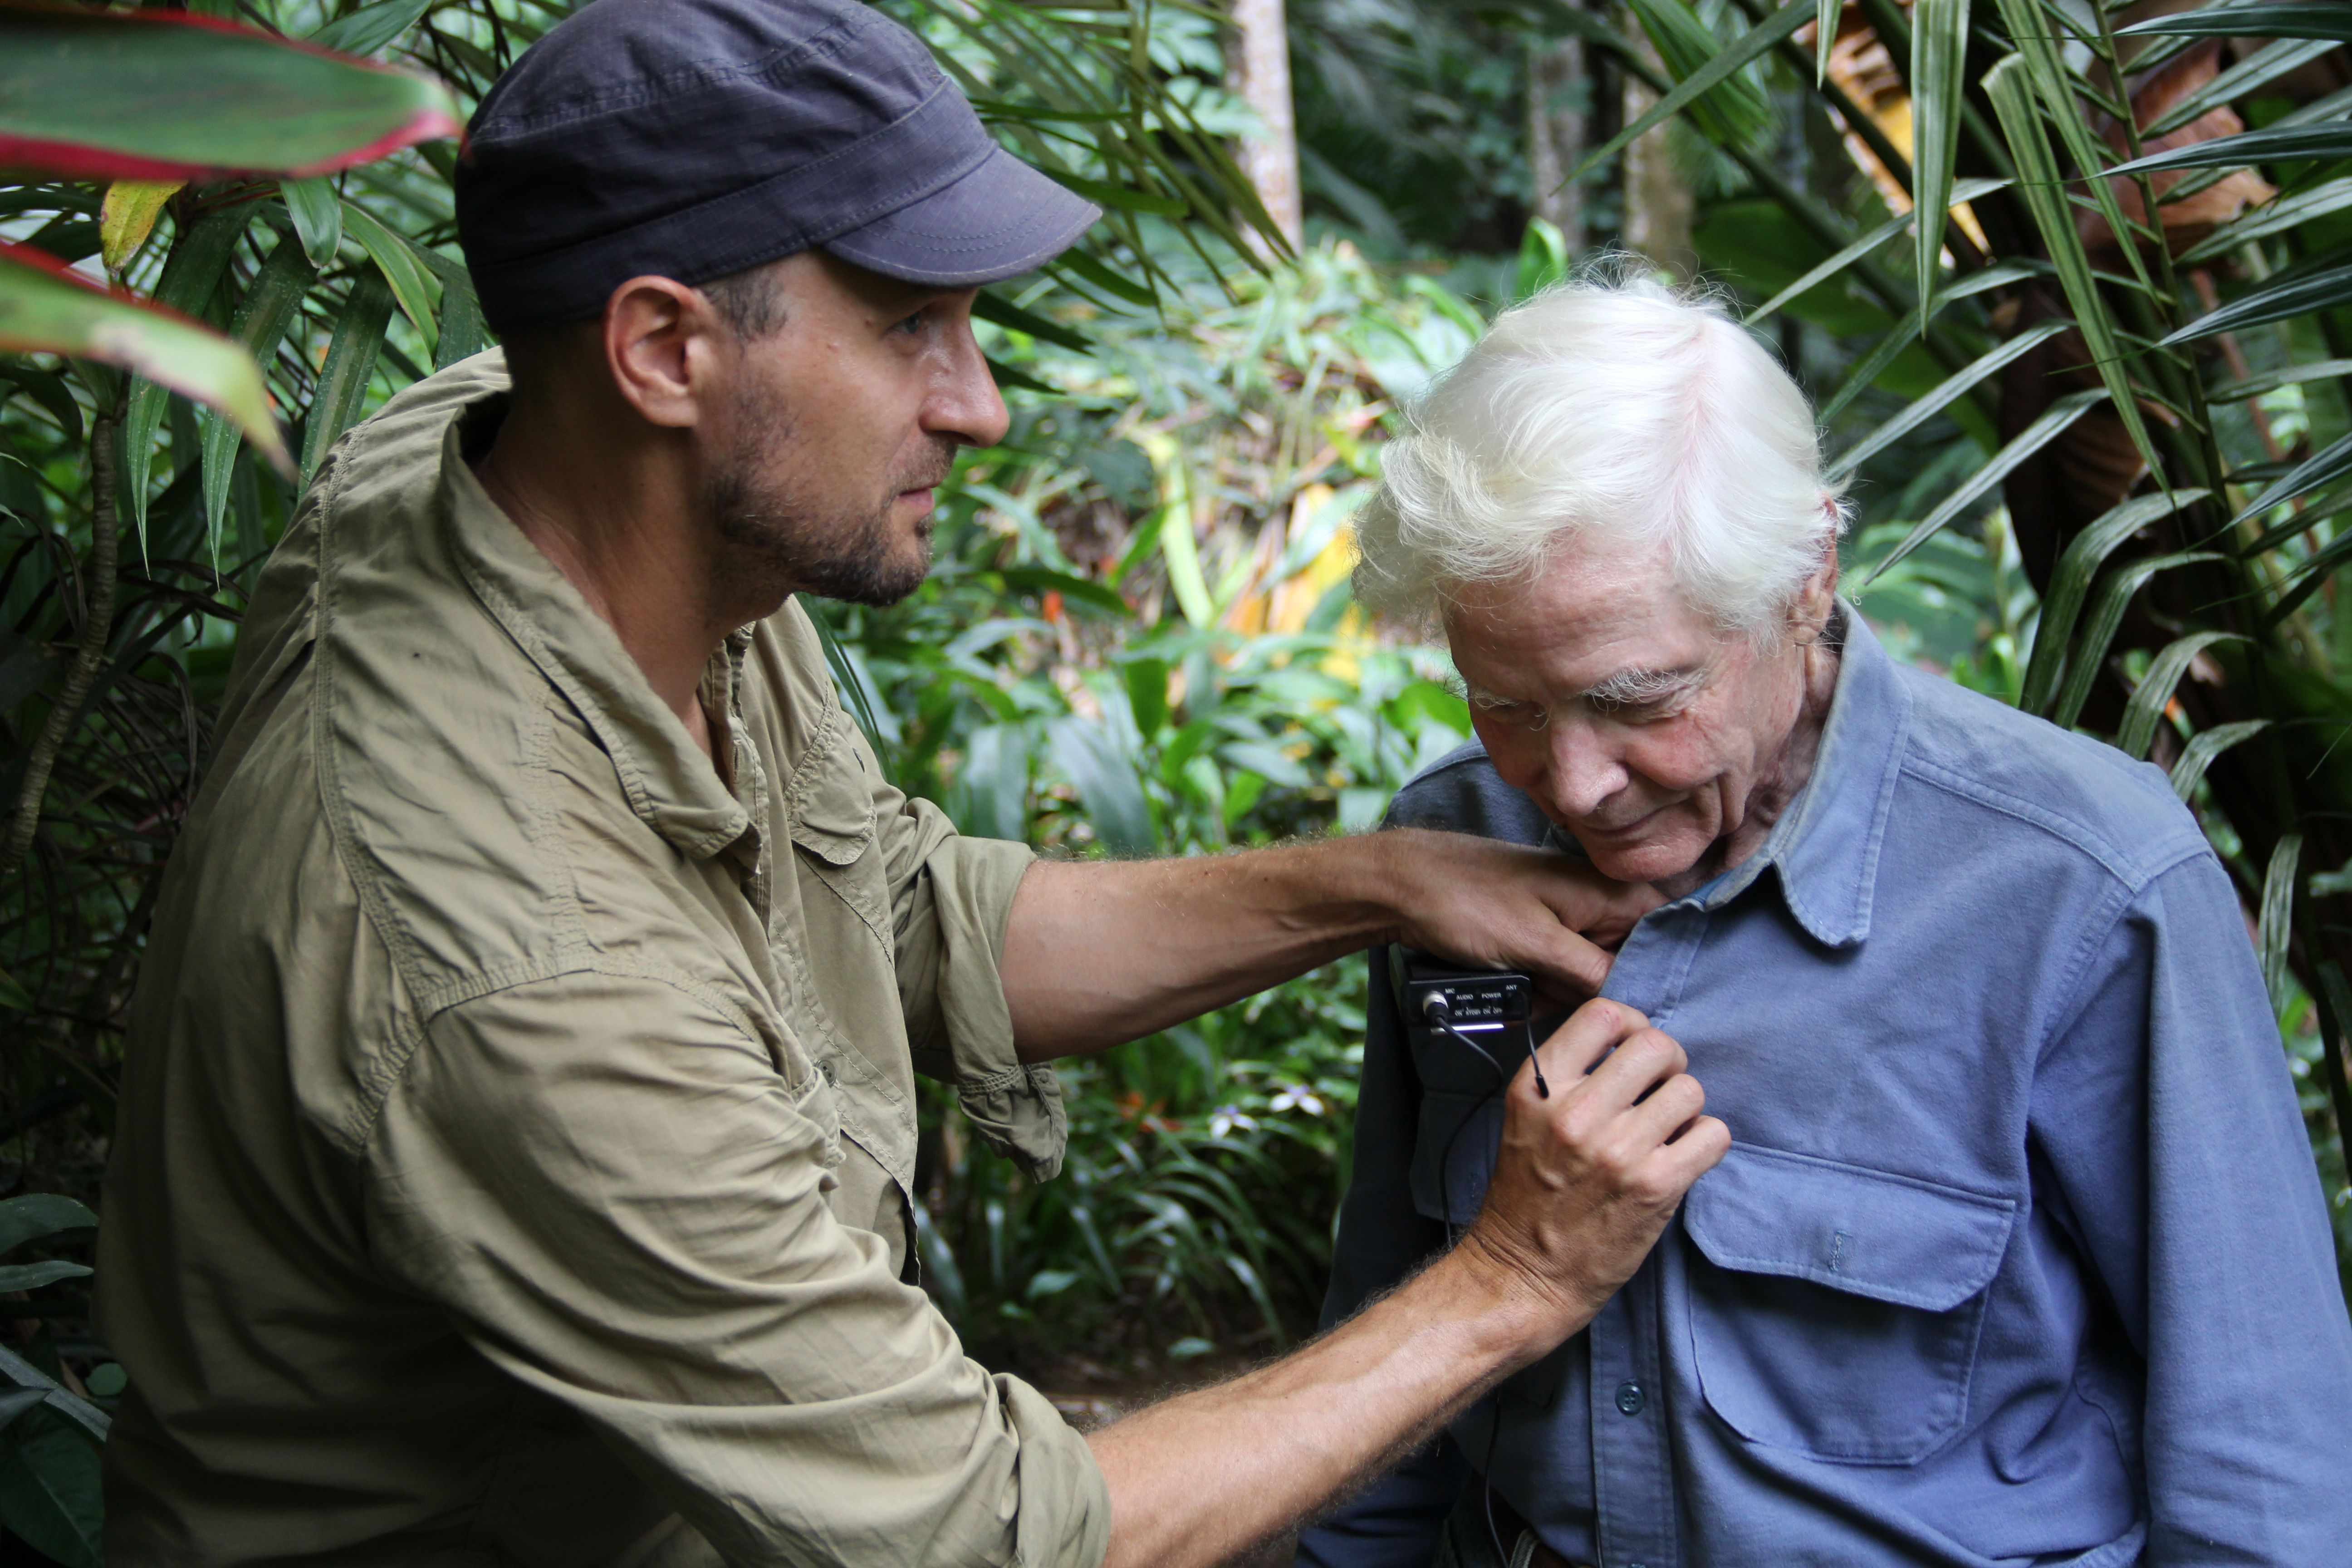 PressroomW.S. Merwin: To Plant a TreeTHIRTEEN's W.S. Merwin: To Plant a Tree Examines the Life & Work of the Poet Laureate Two-Time Pulitzer Winner Environmental Activist Airing in April on PBS